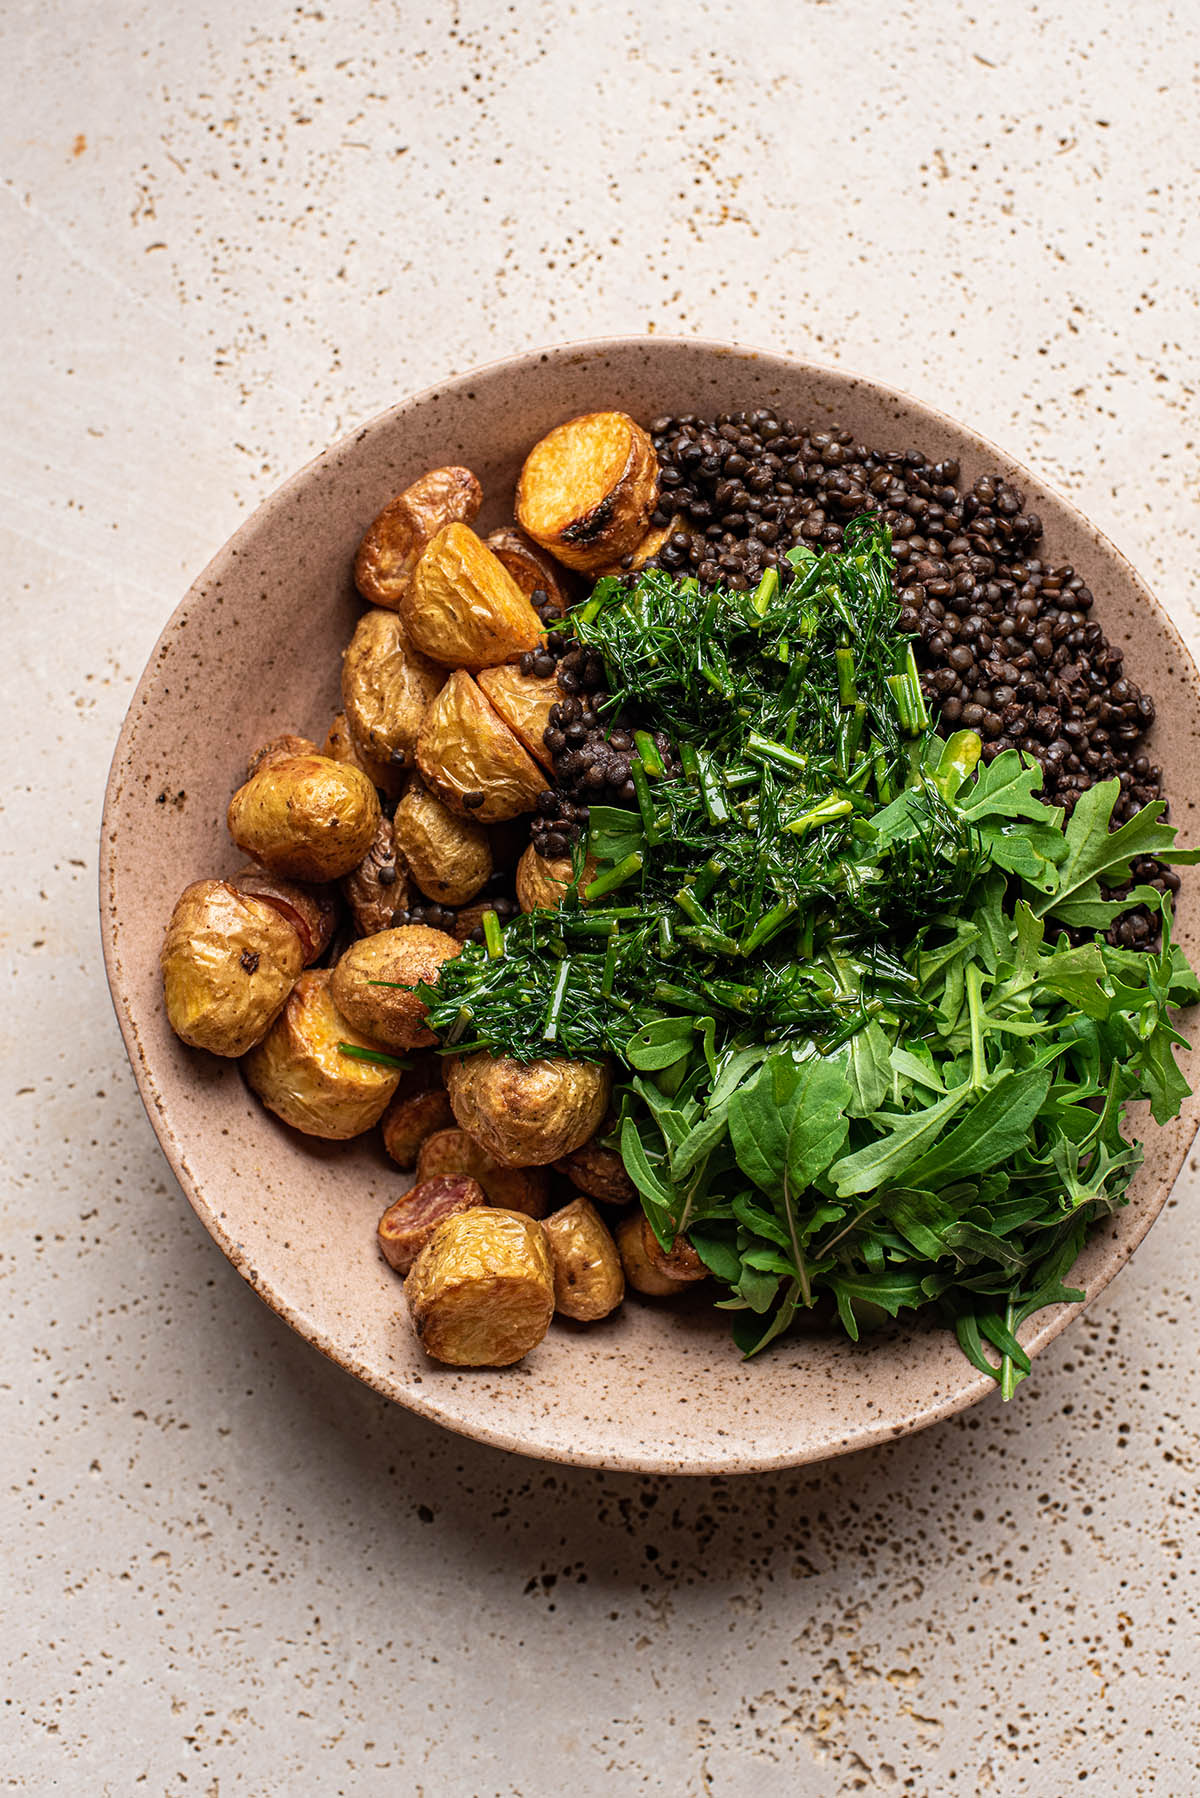 Roasted potatoes, lentils, greens, and herbs in a large bowl.